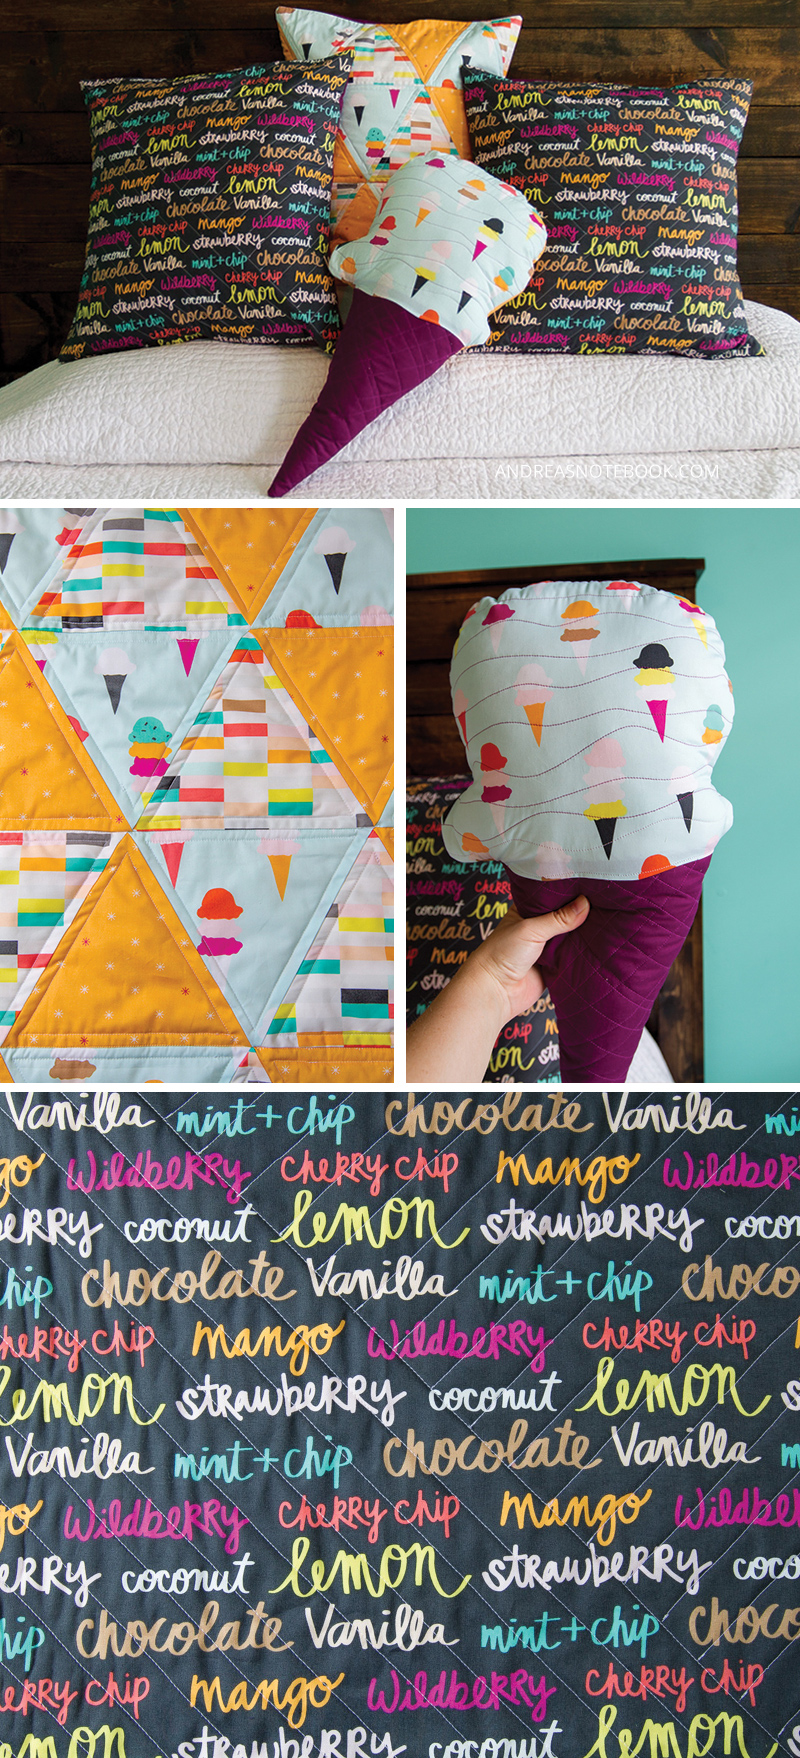 Quilted pillows - Ice Cream Theme! Boardwalk Delight fabrics - andreasnotebook.com